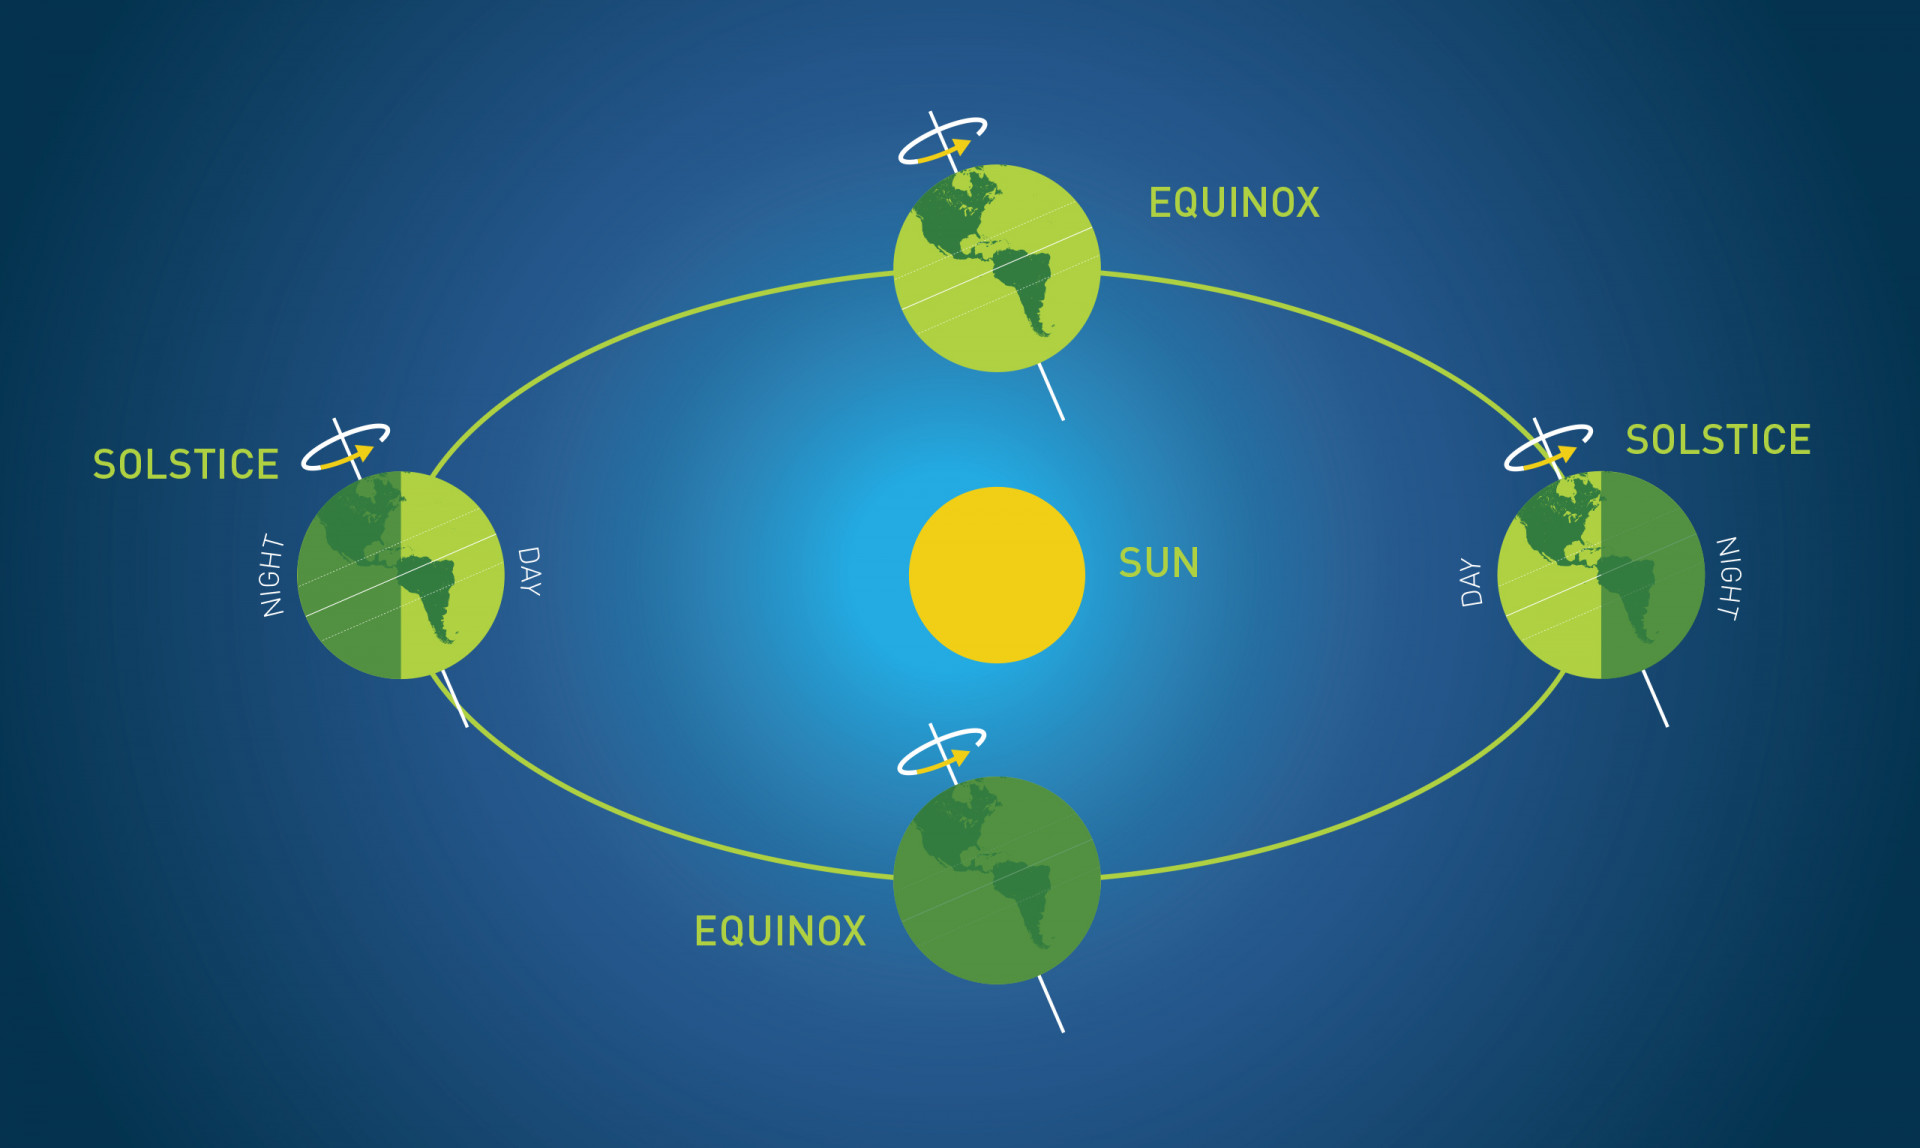 Because the Earth's axis is tilted relative to its orbit, the sun's position over our heads changes throughout the year